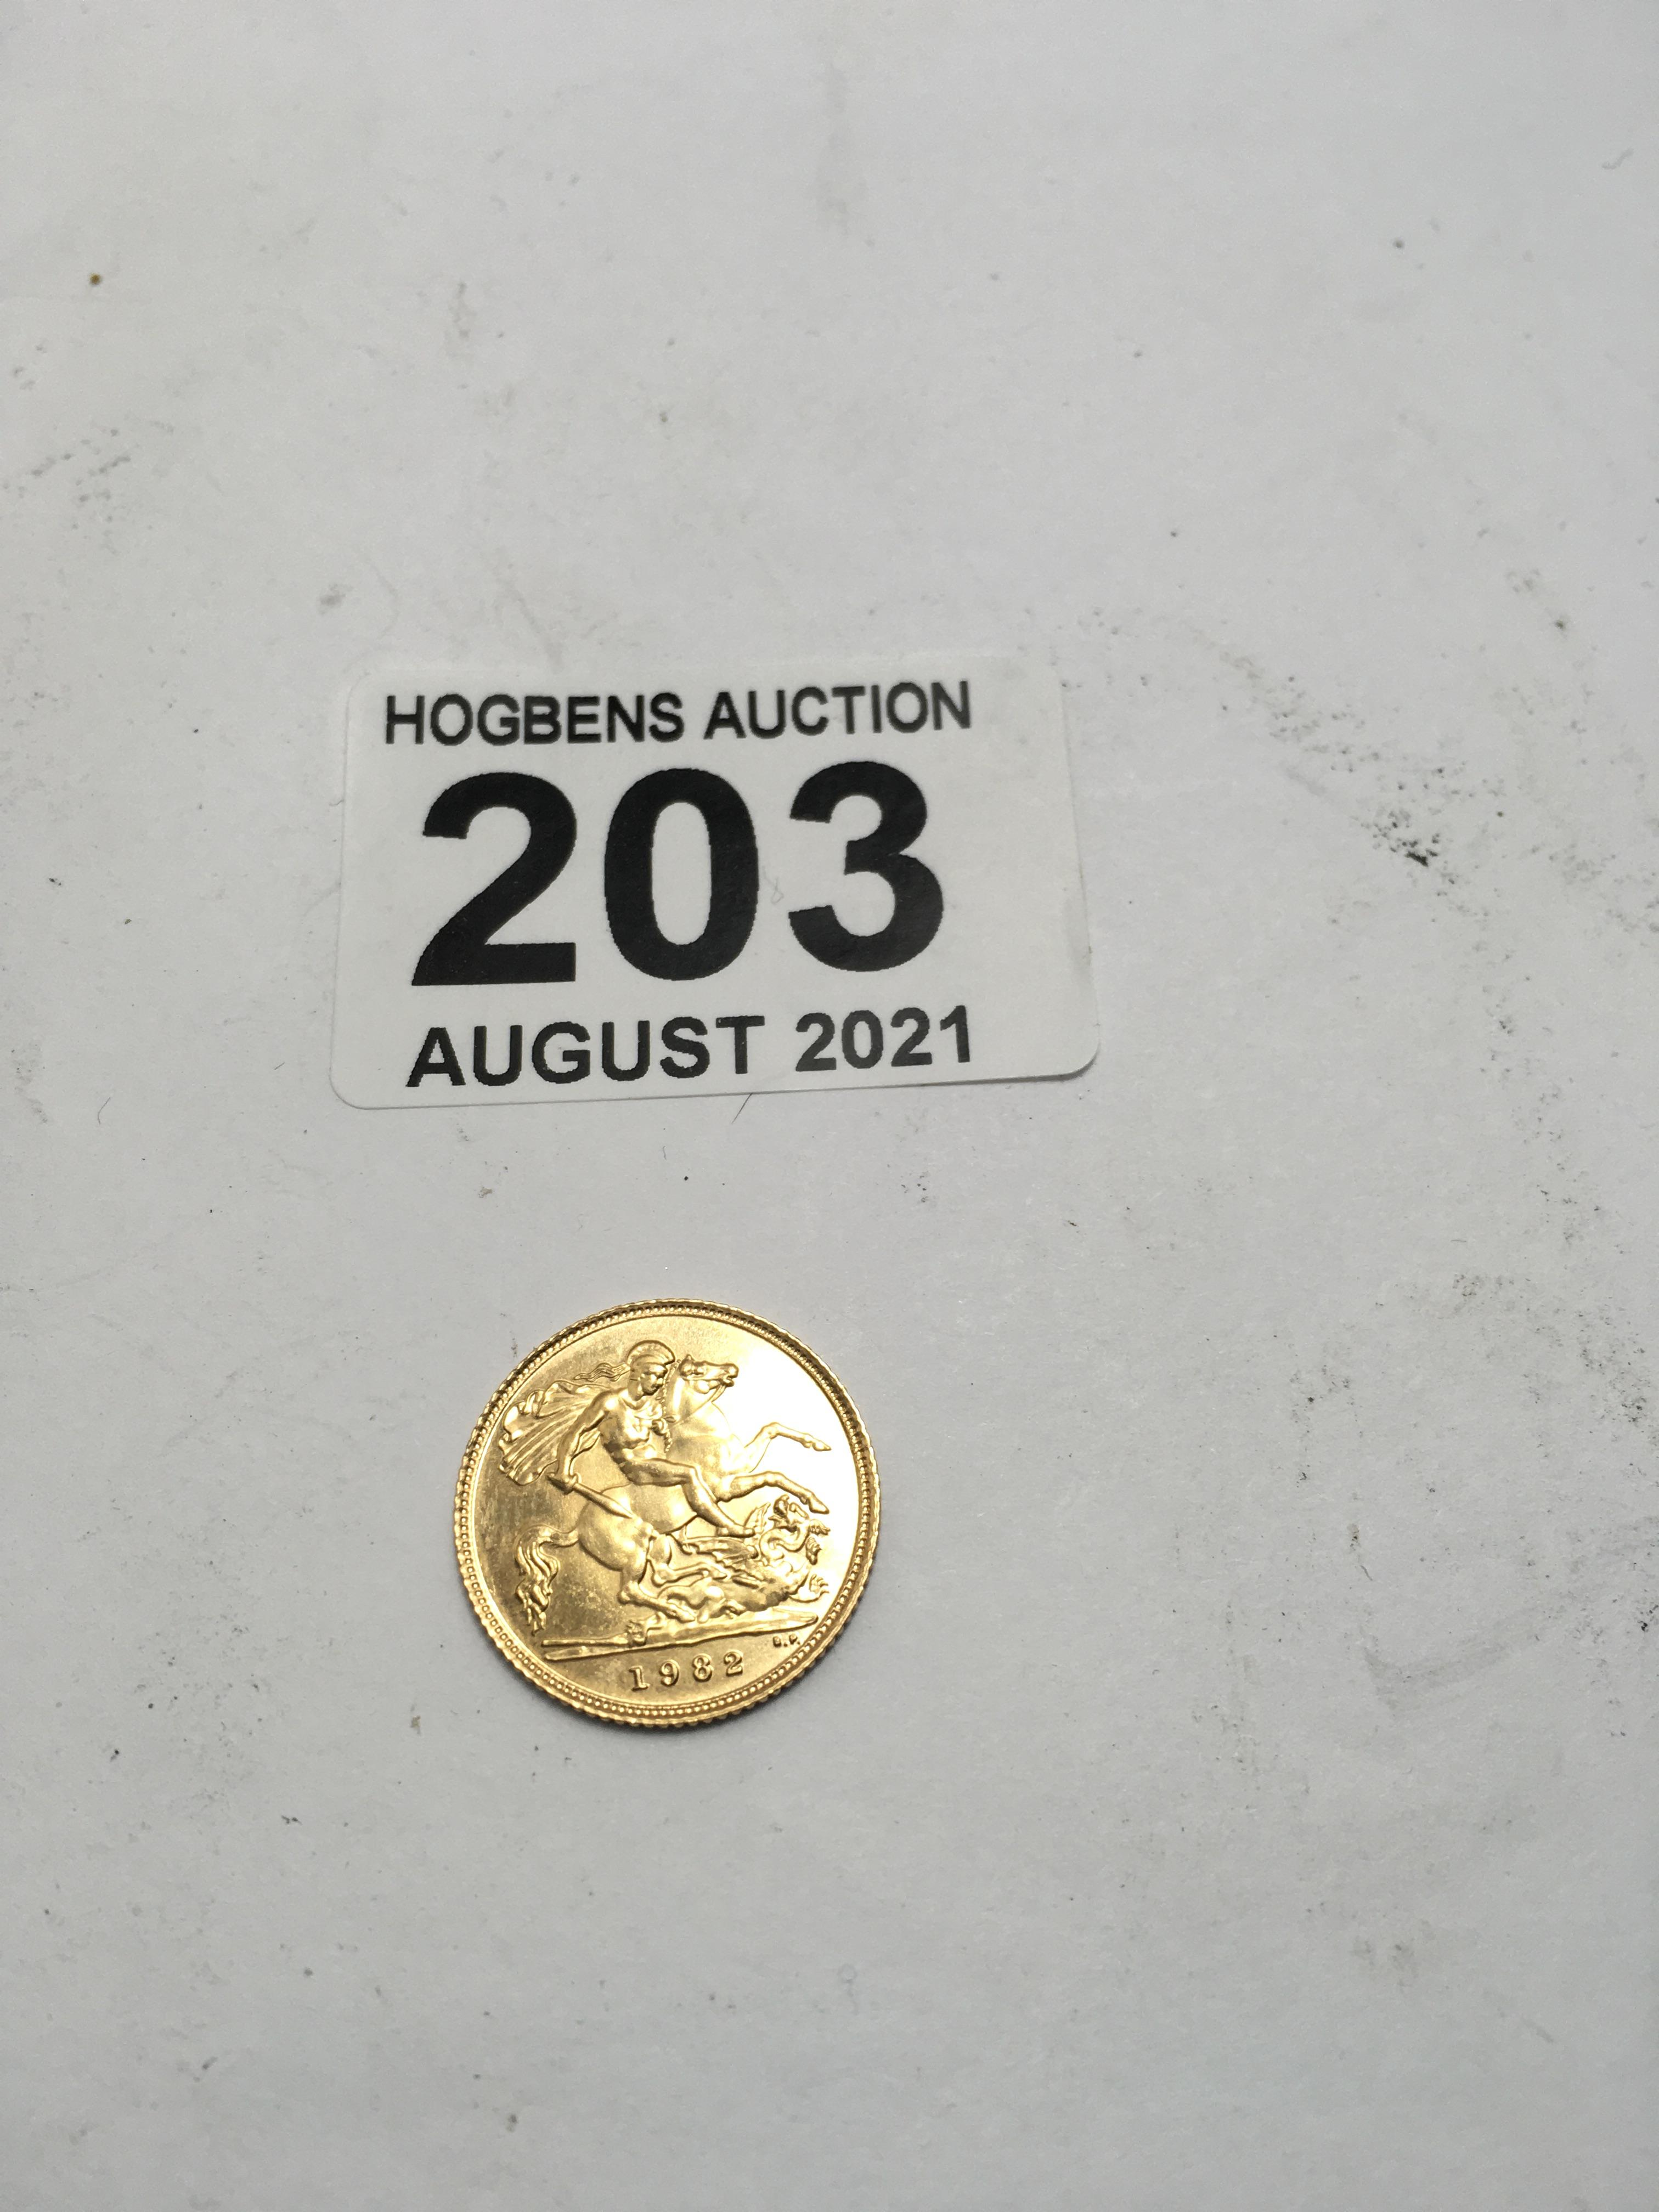 1982 gold half sovereign 1 - Image 2 of 4